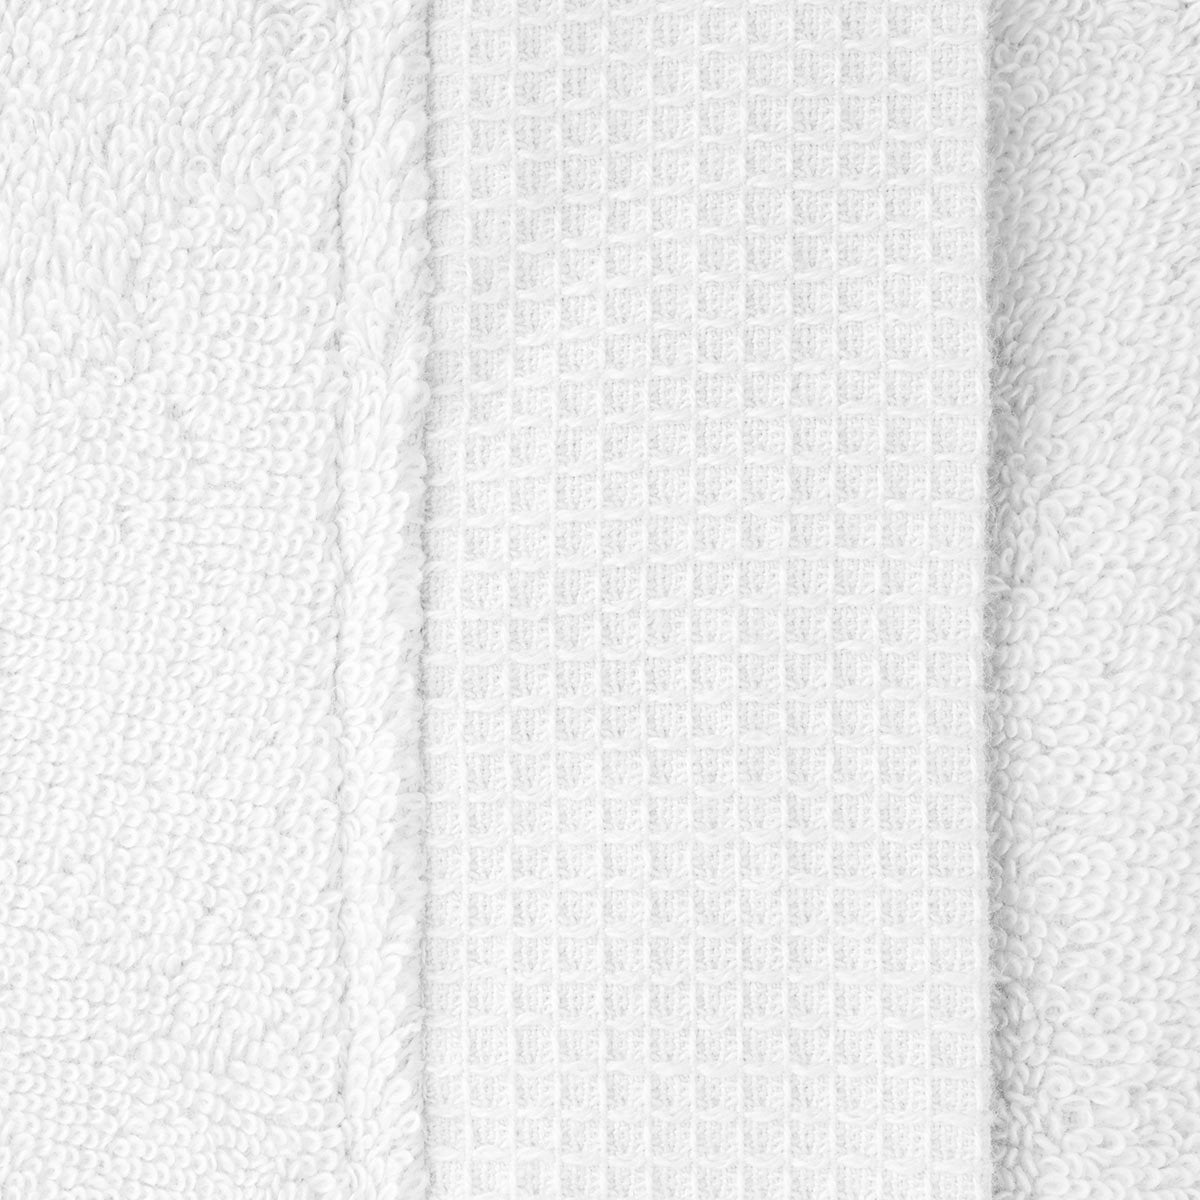 Astrée Kimono Blanc Bathrobe by Yves Delorme | Fig Linens - White bath robe with pockets and belt